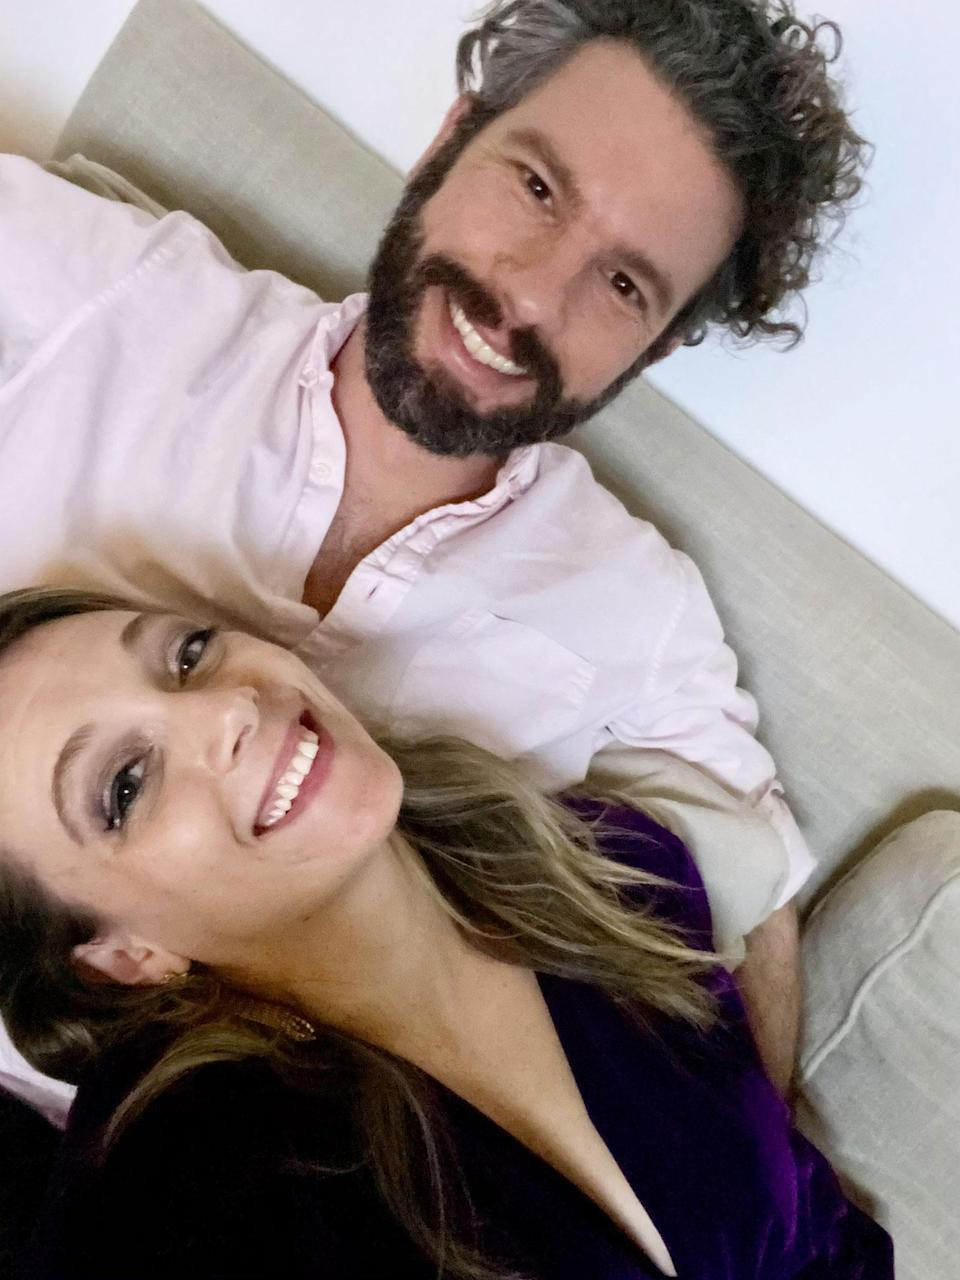 "<p><strong>Names:</strong> Carly Ann Filbin & Marcus<br> <strong>Ages:</strong> 35 & 37<br> <strong>Location:</strong> Brooklyn, New York <br> <strong>Submitted By: </strong>Carly Ann Filbin<br> <br> I'm a comedian (a talented and hot comedian) and in 2020 I took advantage of the stillness and slowness to write down every detail about my disastrous dating life. And though the final product will be VERY FUNNY, the process has been depressing and shameful. It was right there on the page: my desperate and insecure approach to finding love. It made me want to get out there, to date again in my 30s, now that I know myself completely and possess the type of confidence that makes people on the street whip their head around and whisper ""Who's that girl!?"" Sure, dating in a pandemic would be hard, but not harder than spending eight months alone in my studio apartment.<br> <br> So I started swiping on Hinge. I wasn't looking for love. I was looking to finally have fun dating as opposed to being tortured by it. Marcus was so hot that I was like ""<em>wait</em> they let models on Hinge?"" I almost passed him up because he has the same name as my dad. But he had a dog so I swiped right. <br> <br> Our first date was freezing, dark and such a blur but somehow, three weeks later, I was meeting his family for Christmas in Michigan (we drove and were COVID-safe).<br> <br> My quarantine is stuffed with the romance my life lacked in my 20s, the cute relationship s--- I've always wanted but never thought I would actually get. He makes me playlists and he makes me dinner and he makes me happy. Timing is everything, and it's ironic and poetic that this cynic of love found it in a hopeless place. We haven't said ""I love you"" yet. But I love him. I hope we don't break up before this is published. </p>"